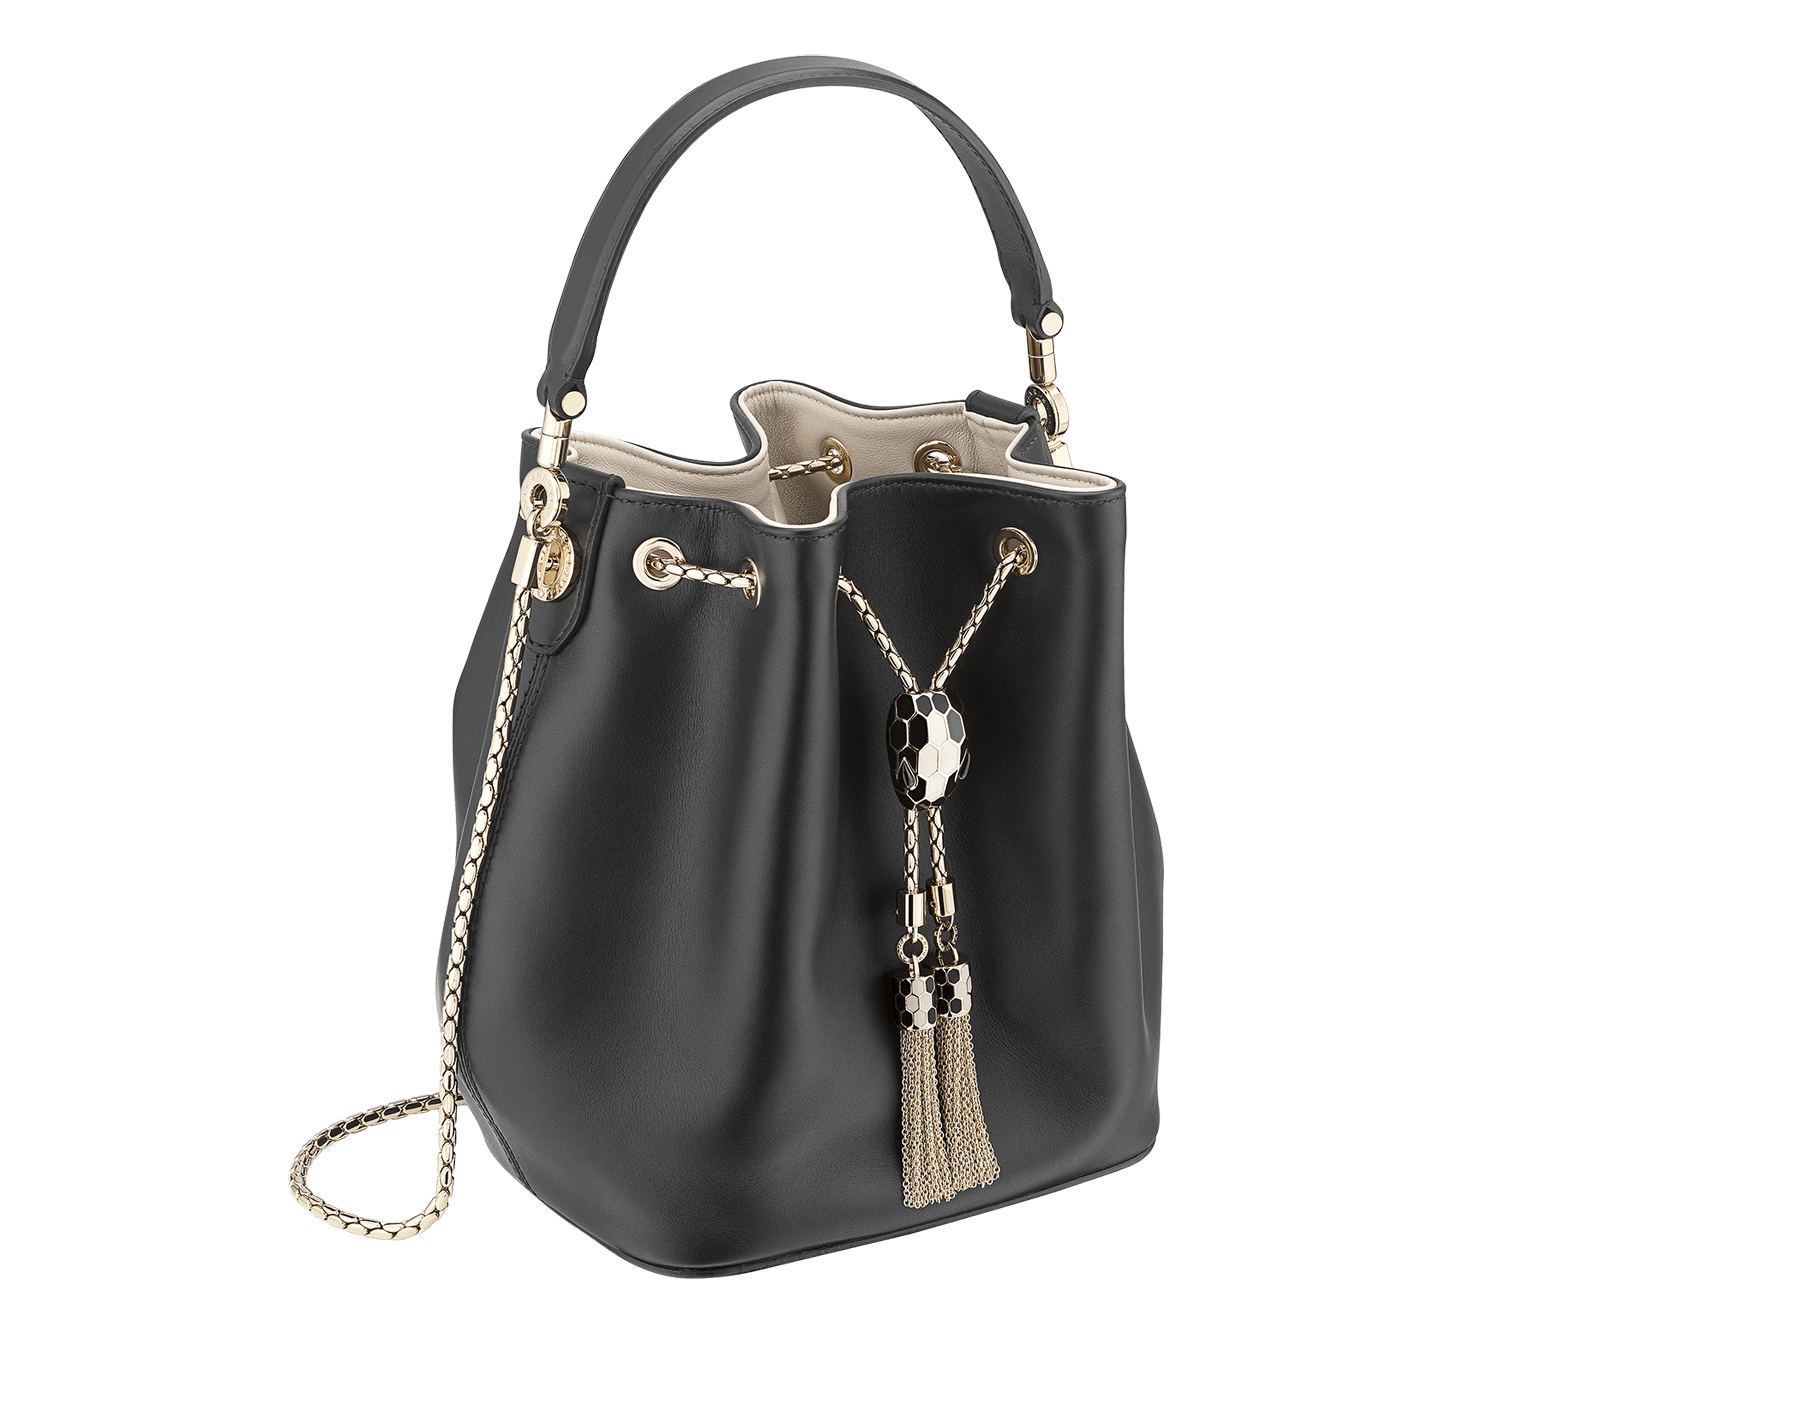 Bucket Serpenti Forever in black smooth calf leather and milky opal nappa internal lining. Hardware in light gold plated brass and snakehead closure in black and white enamel, with eyes in black onyx. 934-CLb image 2